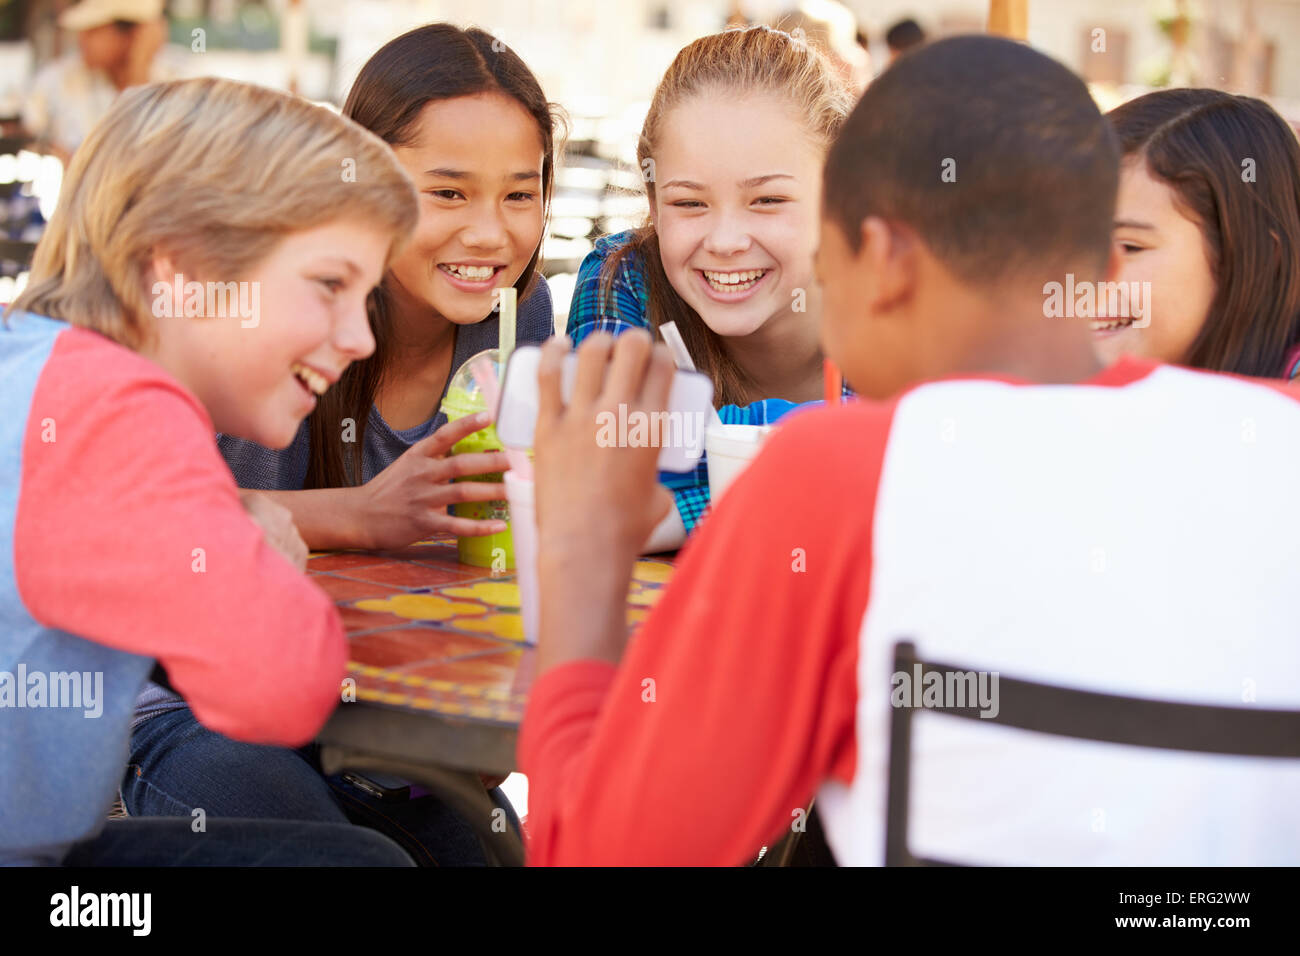 Group Of Children In CafŽ Looking At Text On Mobile Phone - Stock Image